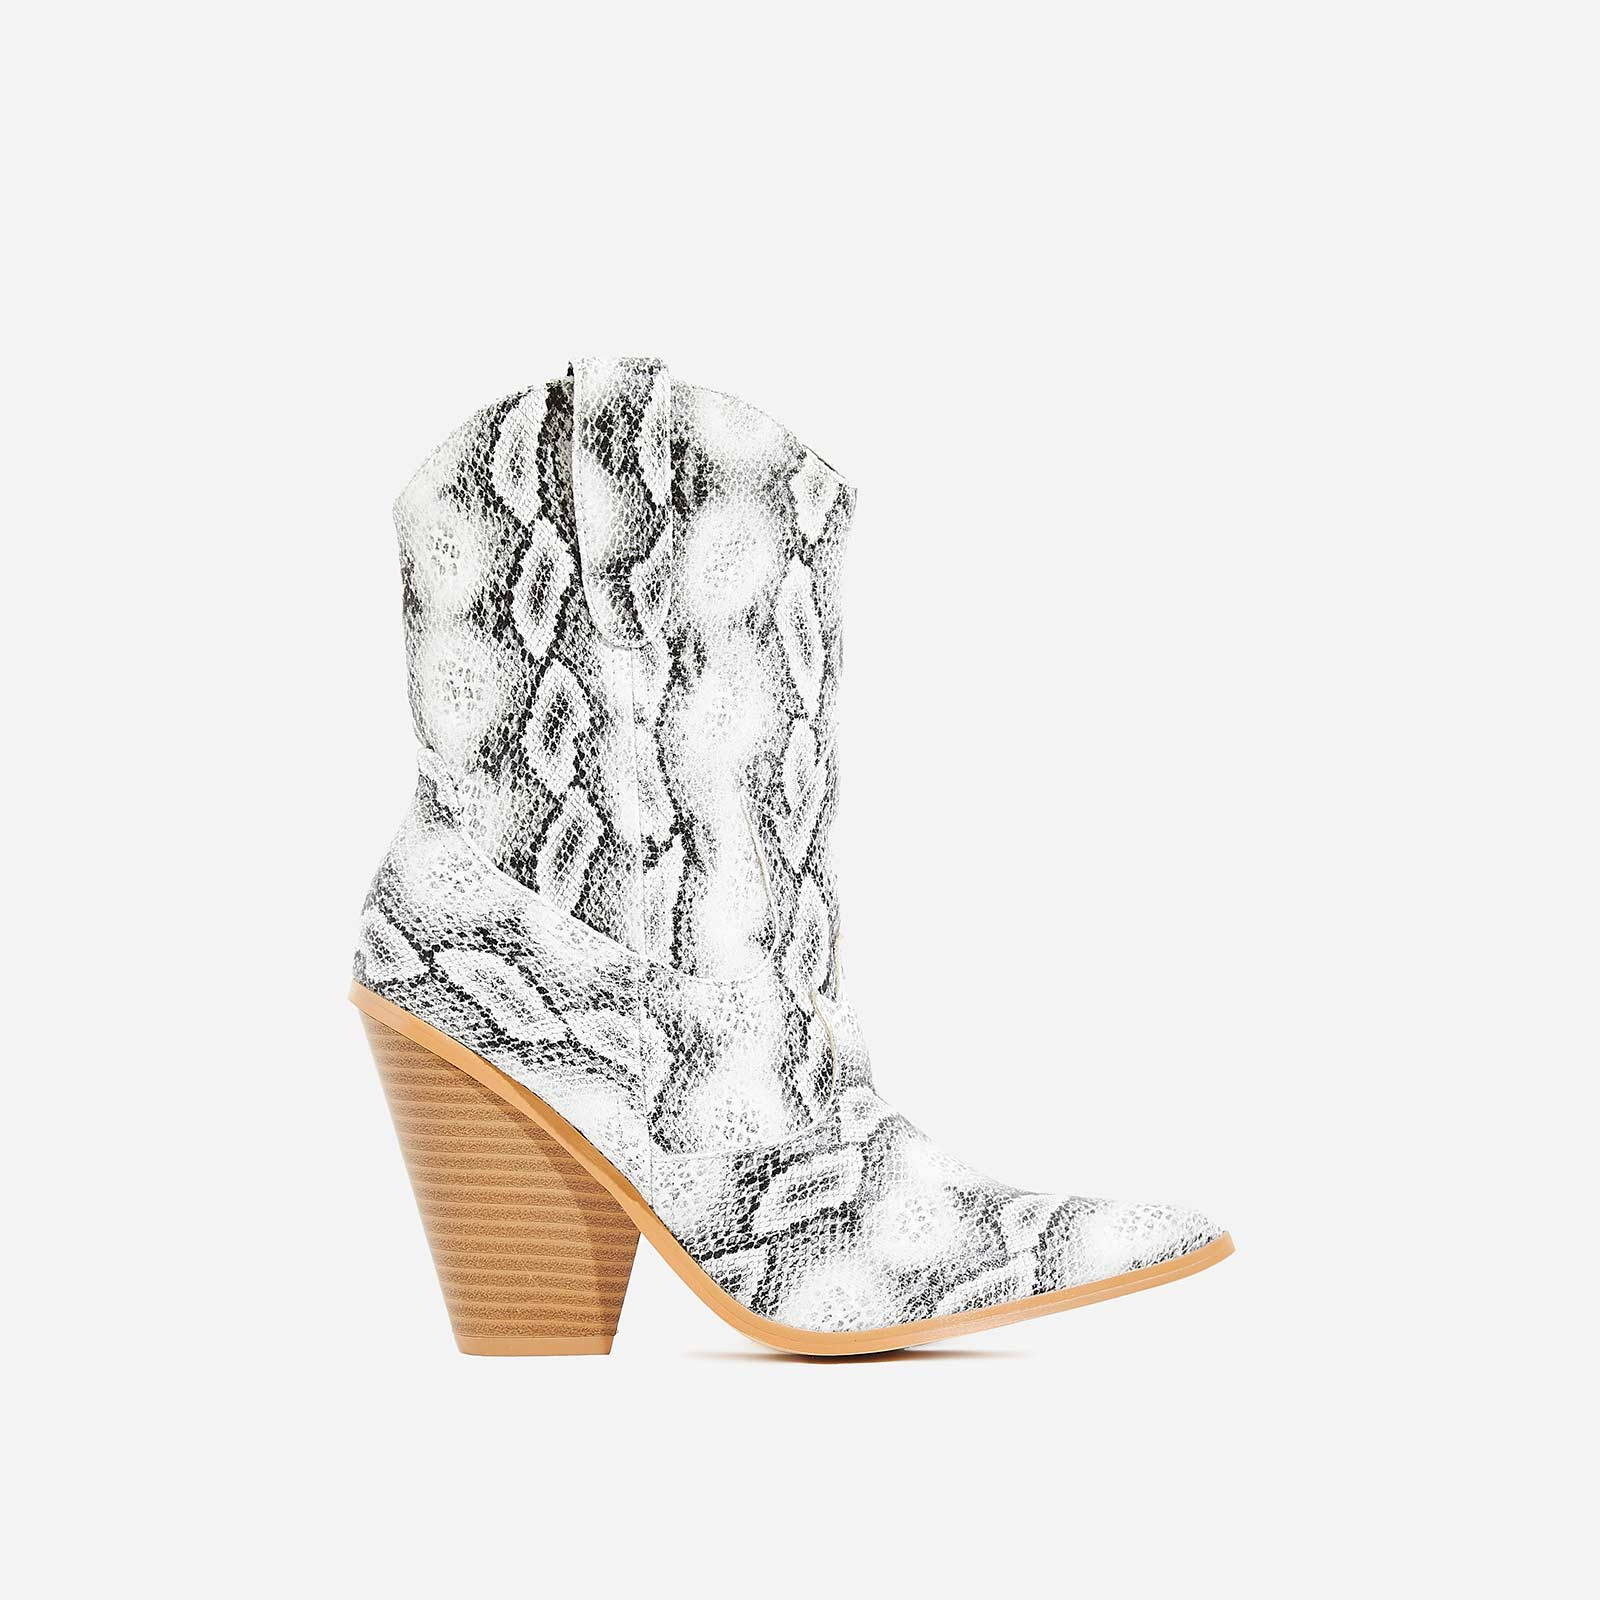 Kani Western Ankle Boot In Grey Snake Print Faux Leather